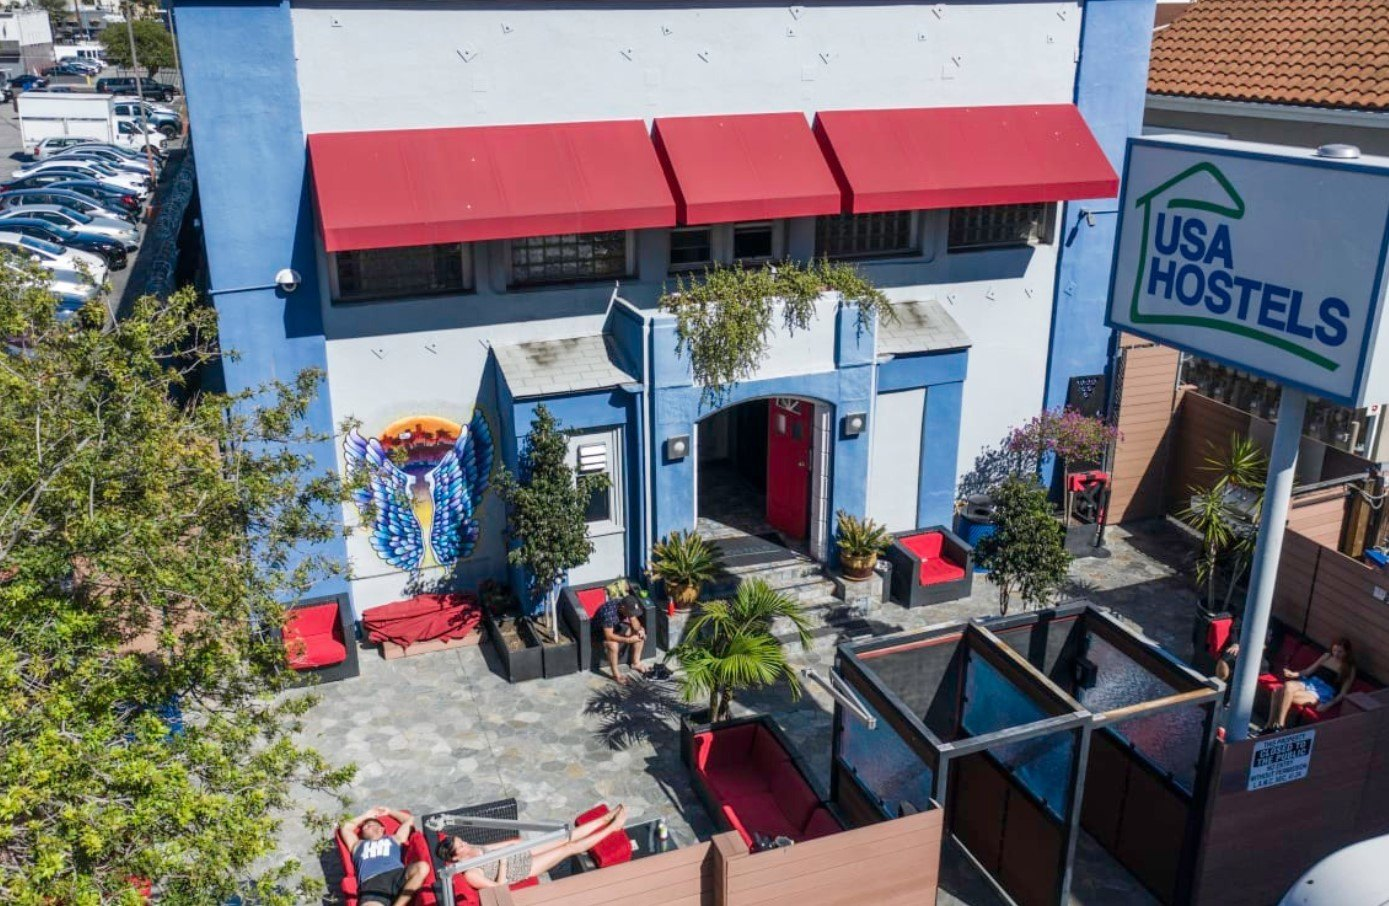 the best hostel in usa